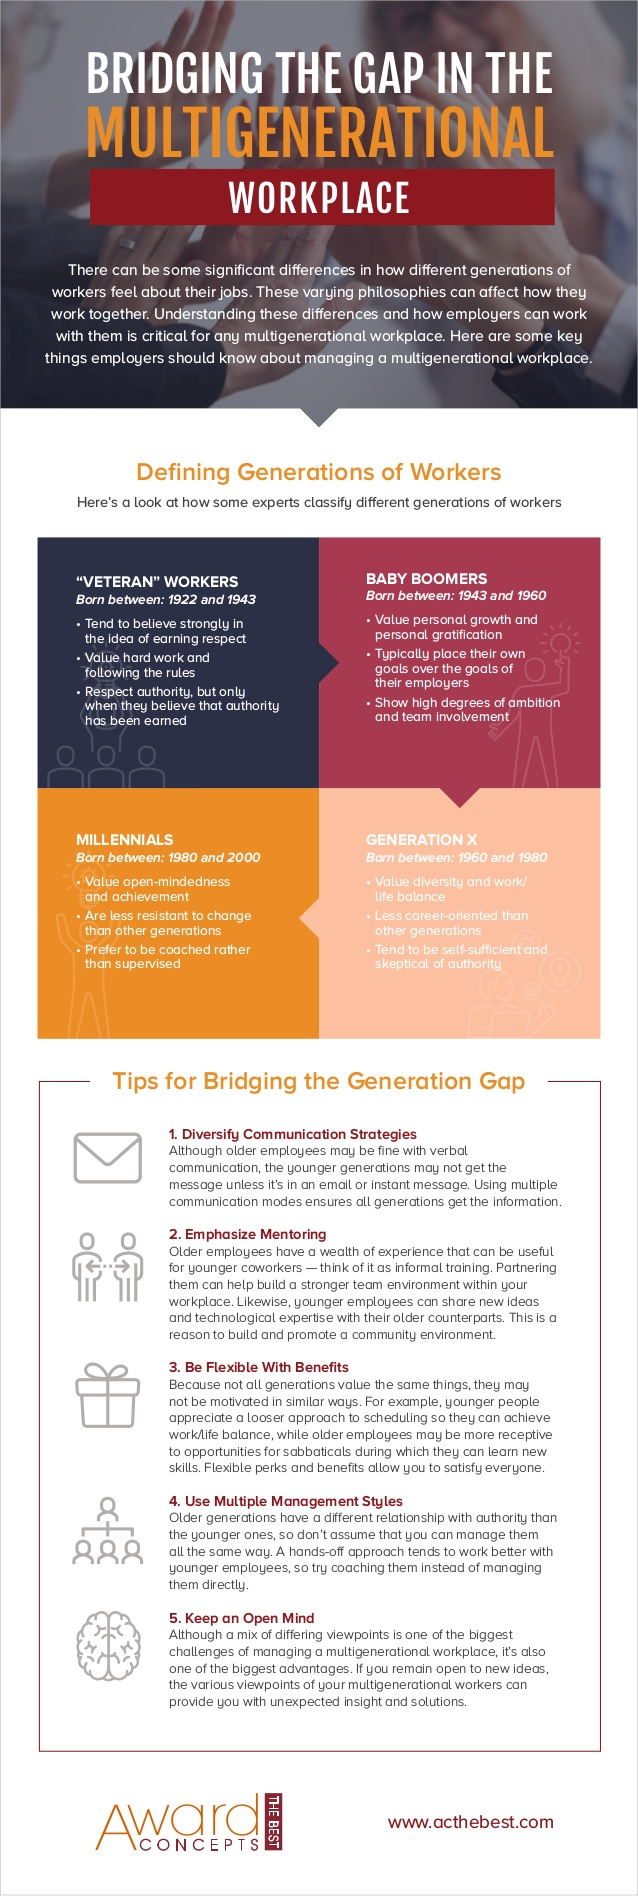 5 Tips on How to Bridge the Gap in a Multi-Generational Workforce